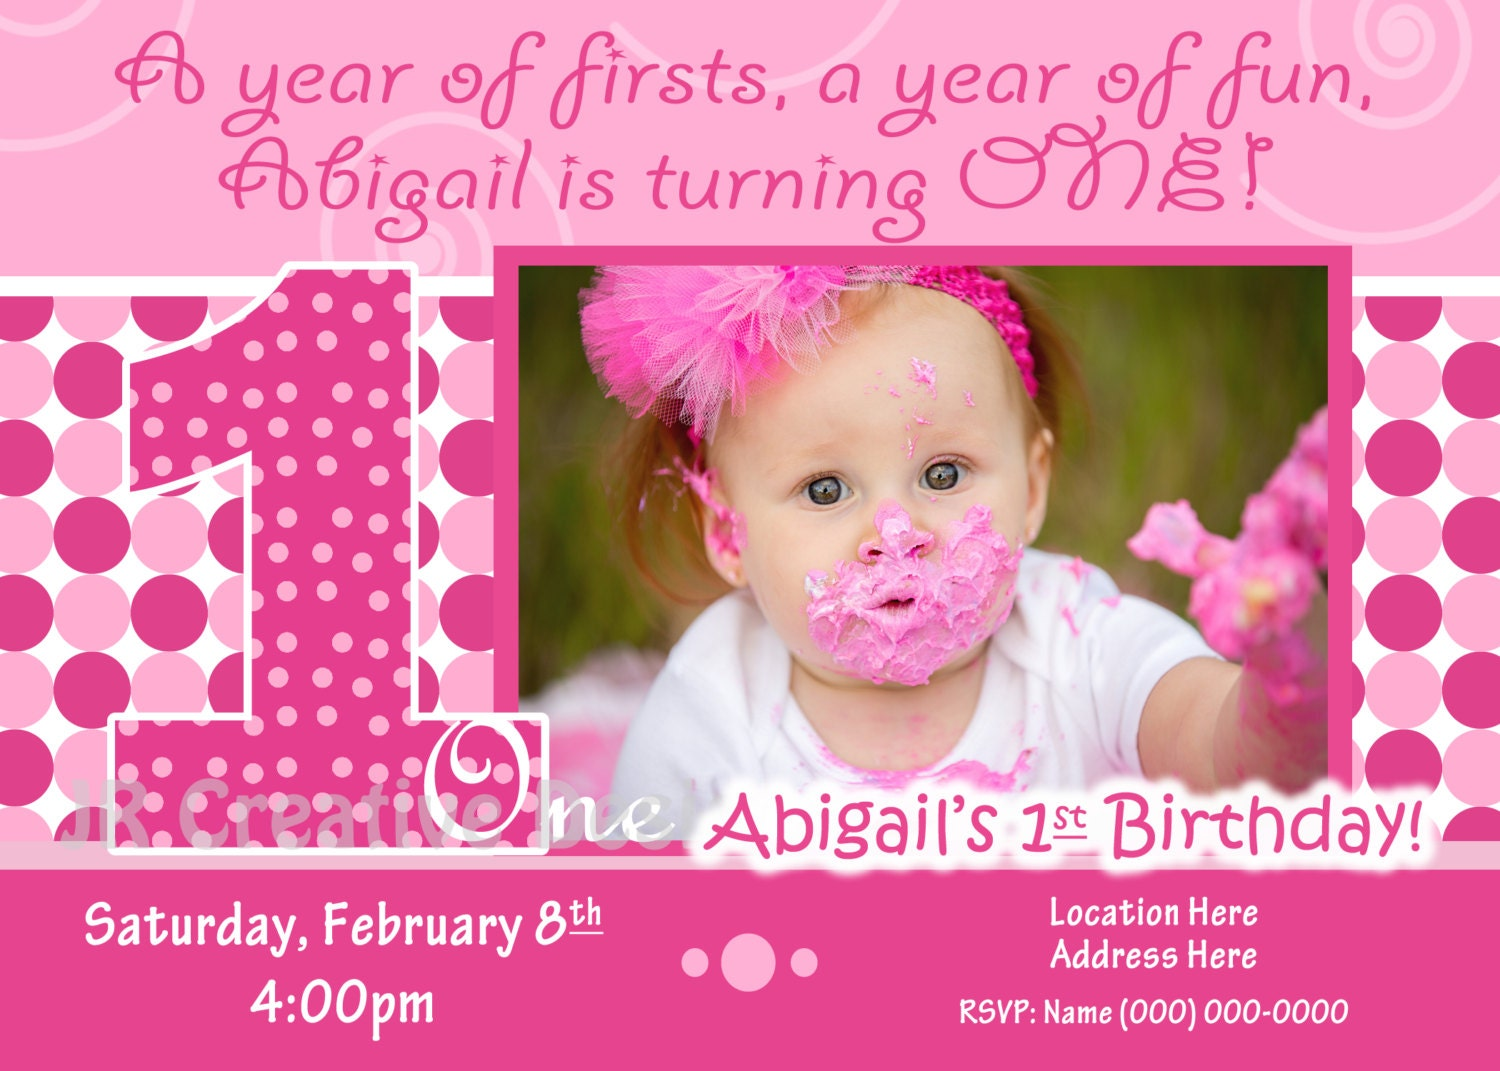 1st birthday Girl invite 1st Birthday Girl invitation – Birthday Invitation Design for 1st Birthday